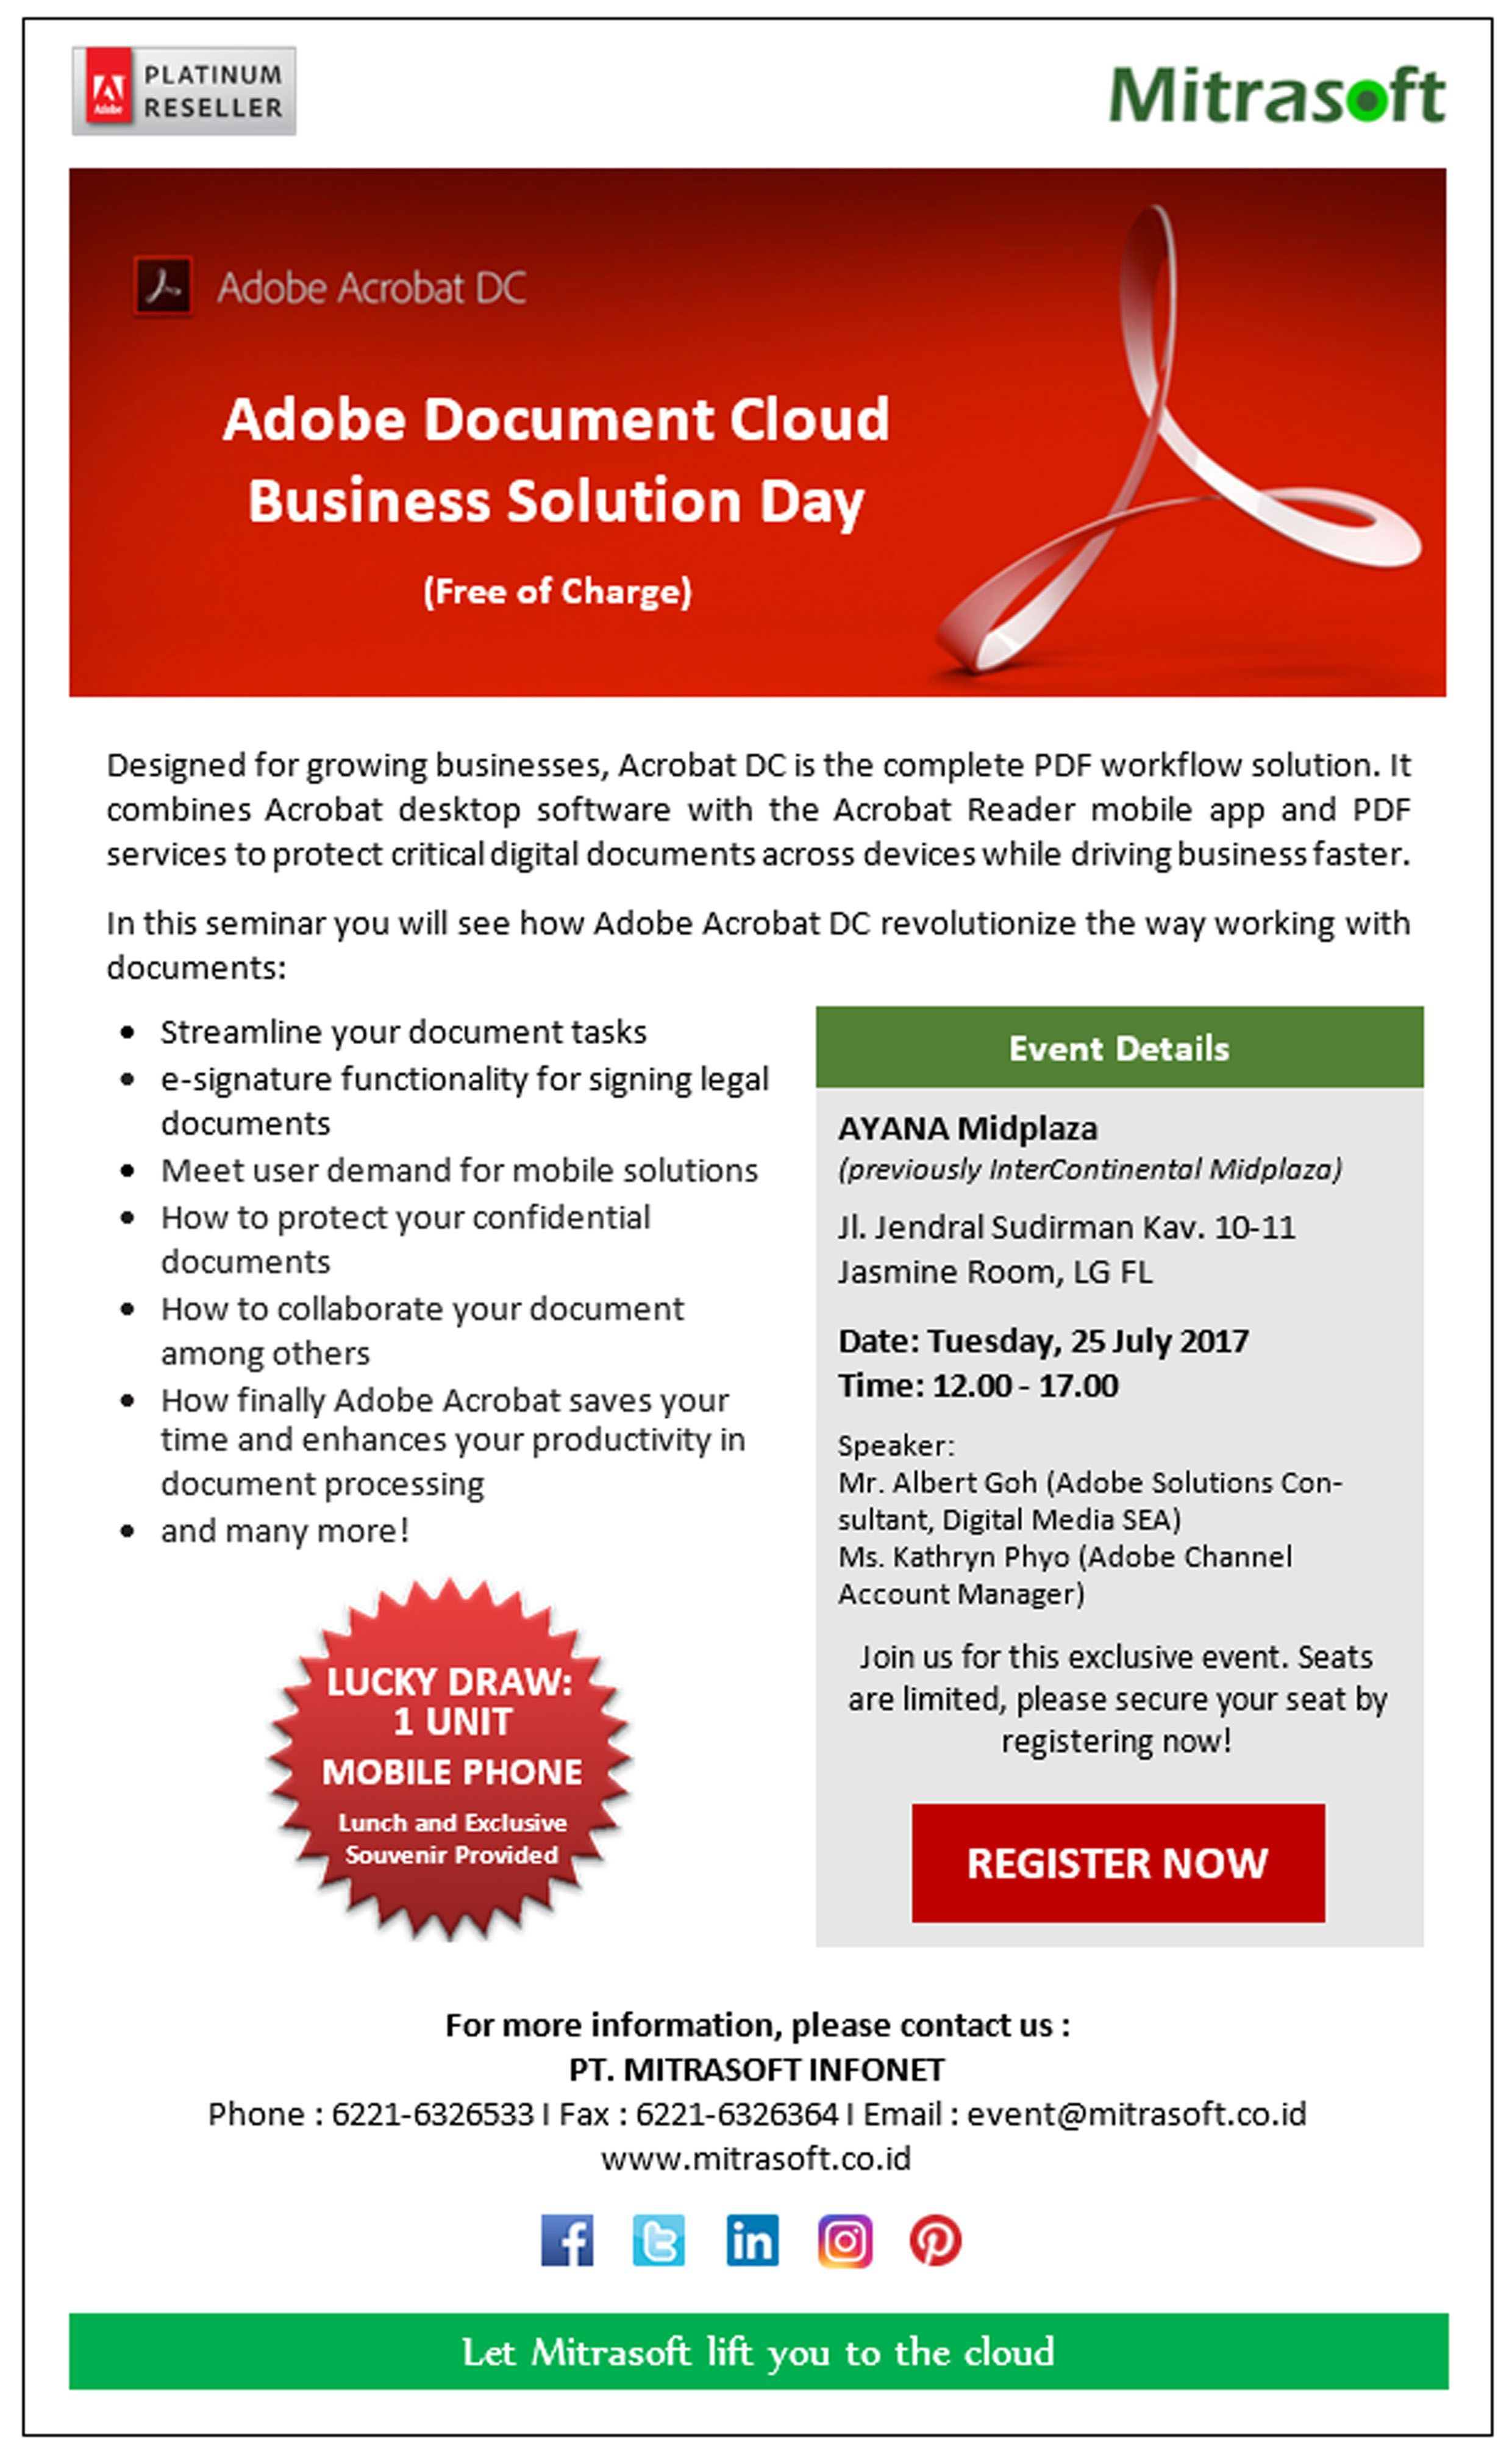 MitrasoftEvent #Adobe Document Cloud Business Solution Day